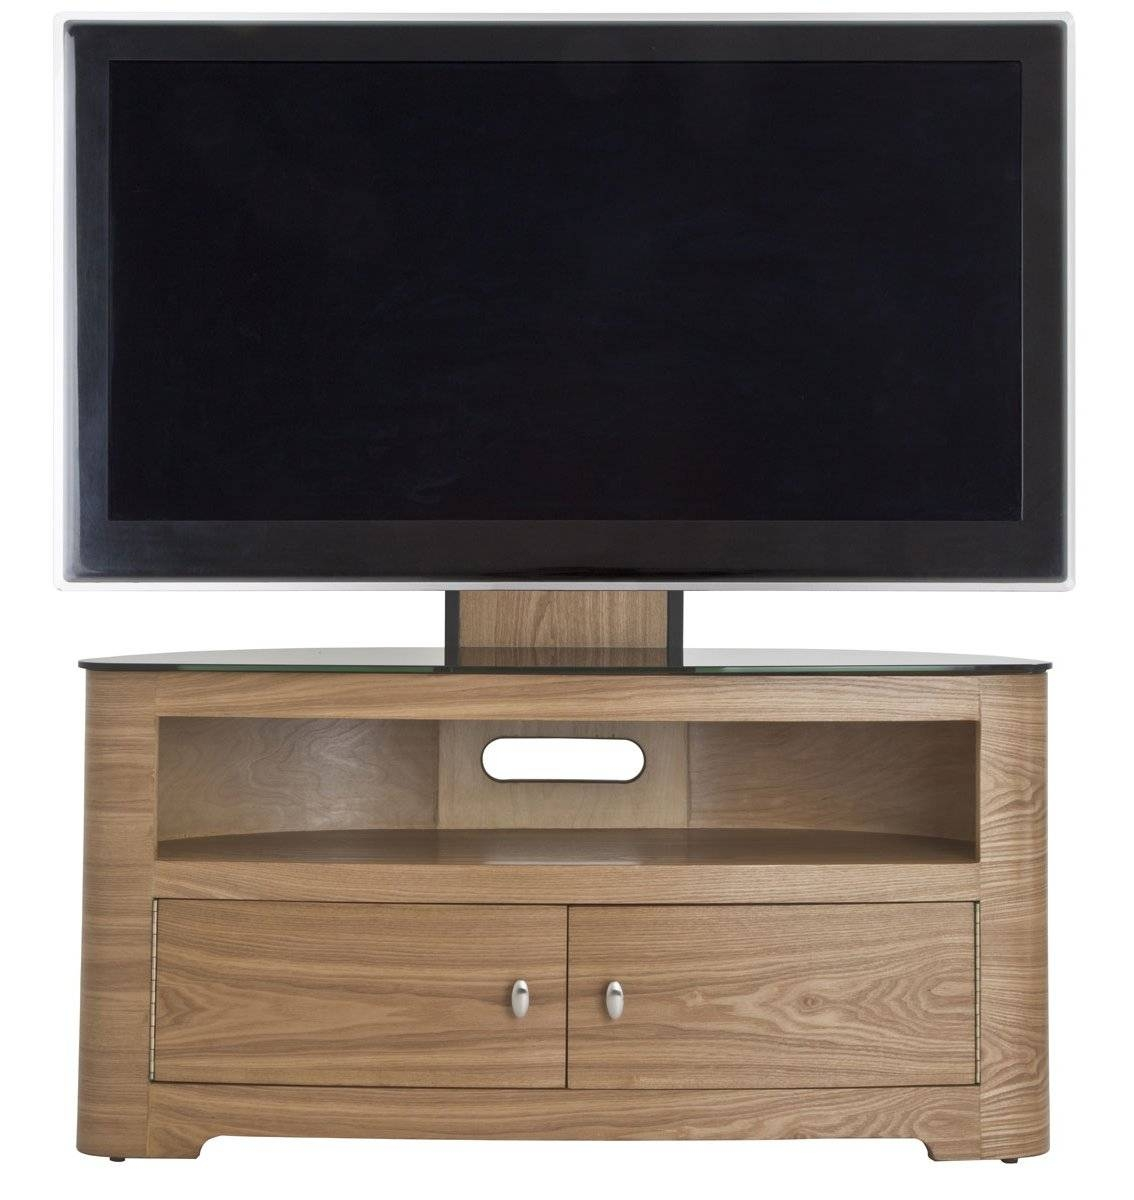 Brown Varnished Maple Wood Tv Stand With Mount Using Double Swing regarding Maple Wood Tv Stands (Image 1 of 15)